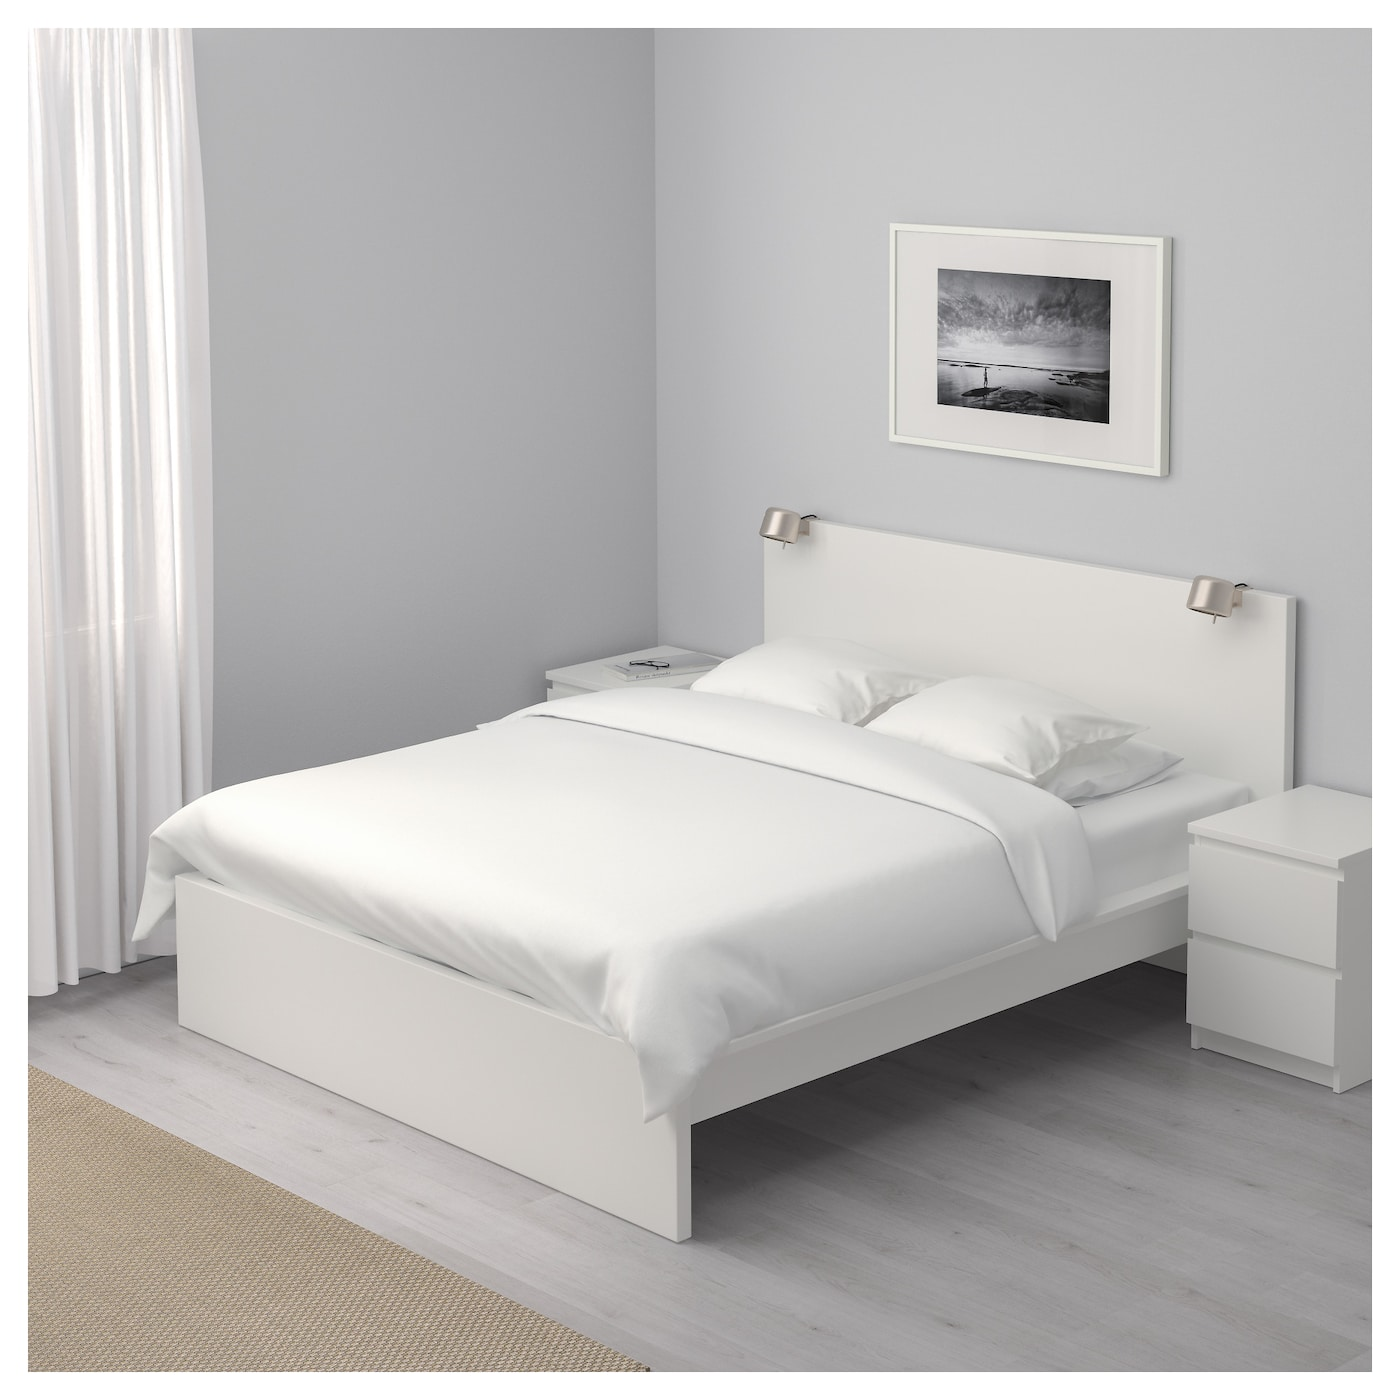 malm cadre de lit haut blanc 160 x 200 cm ikea. Black Bedroom Furniture Sets. Home Design Ideas